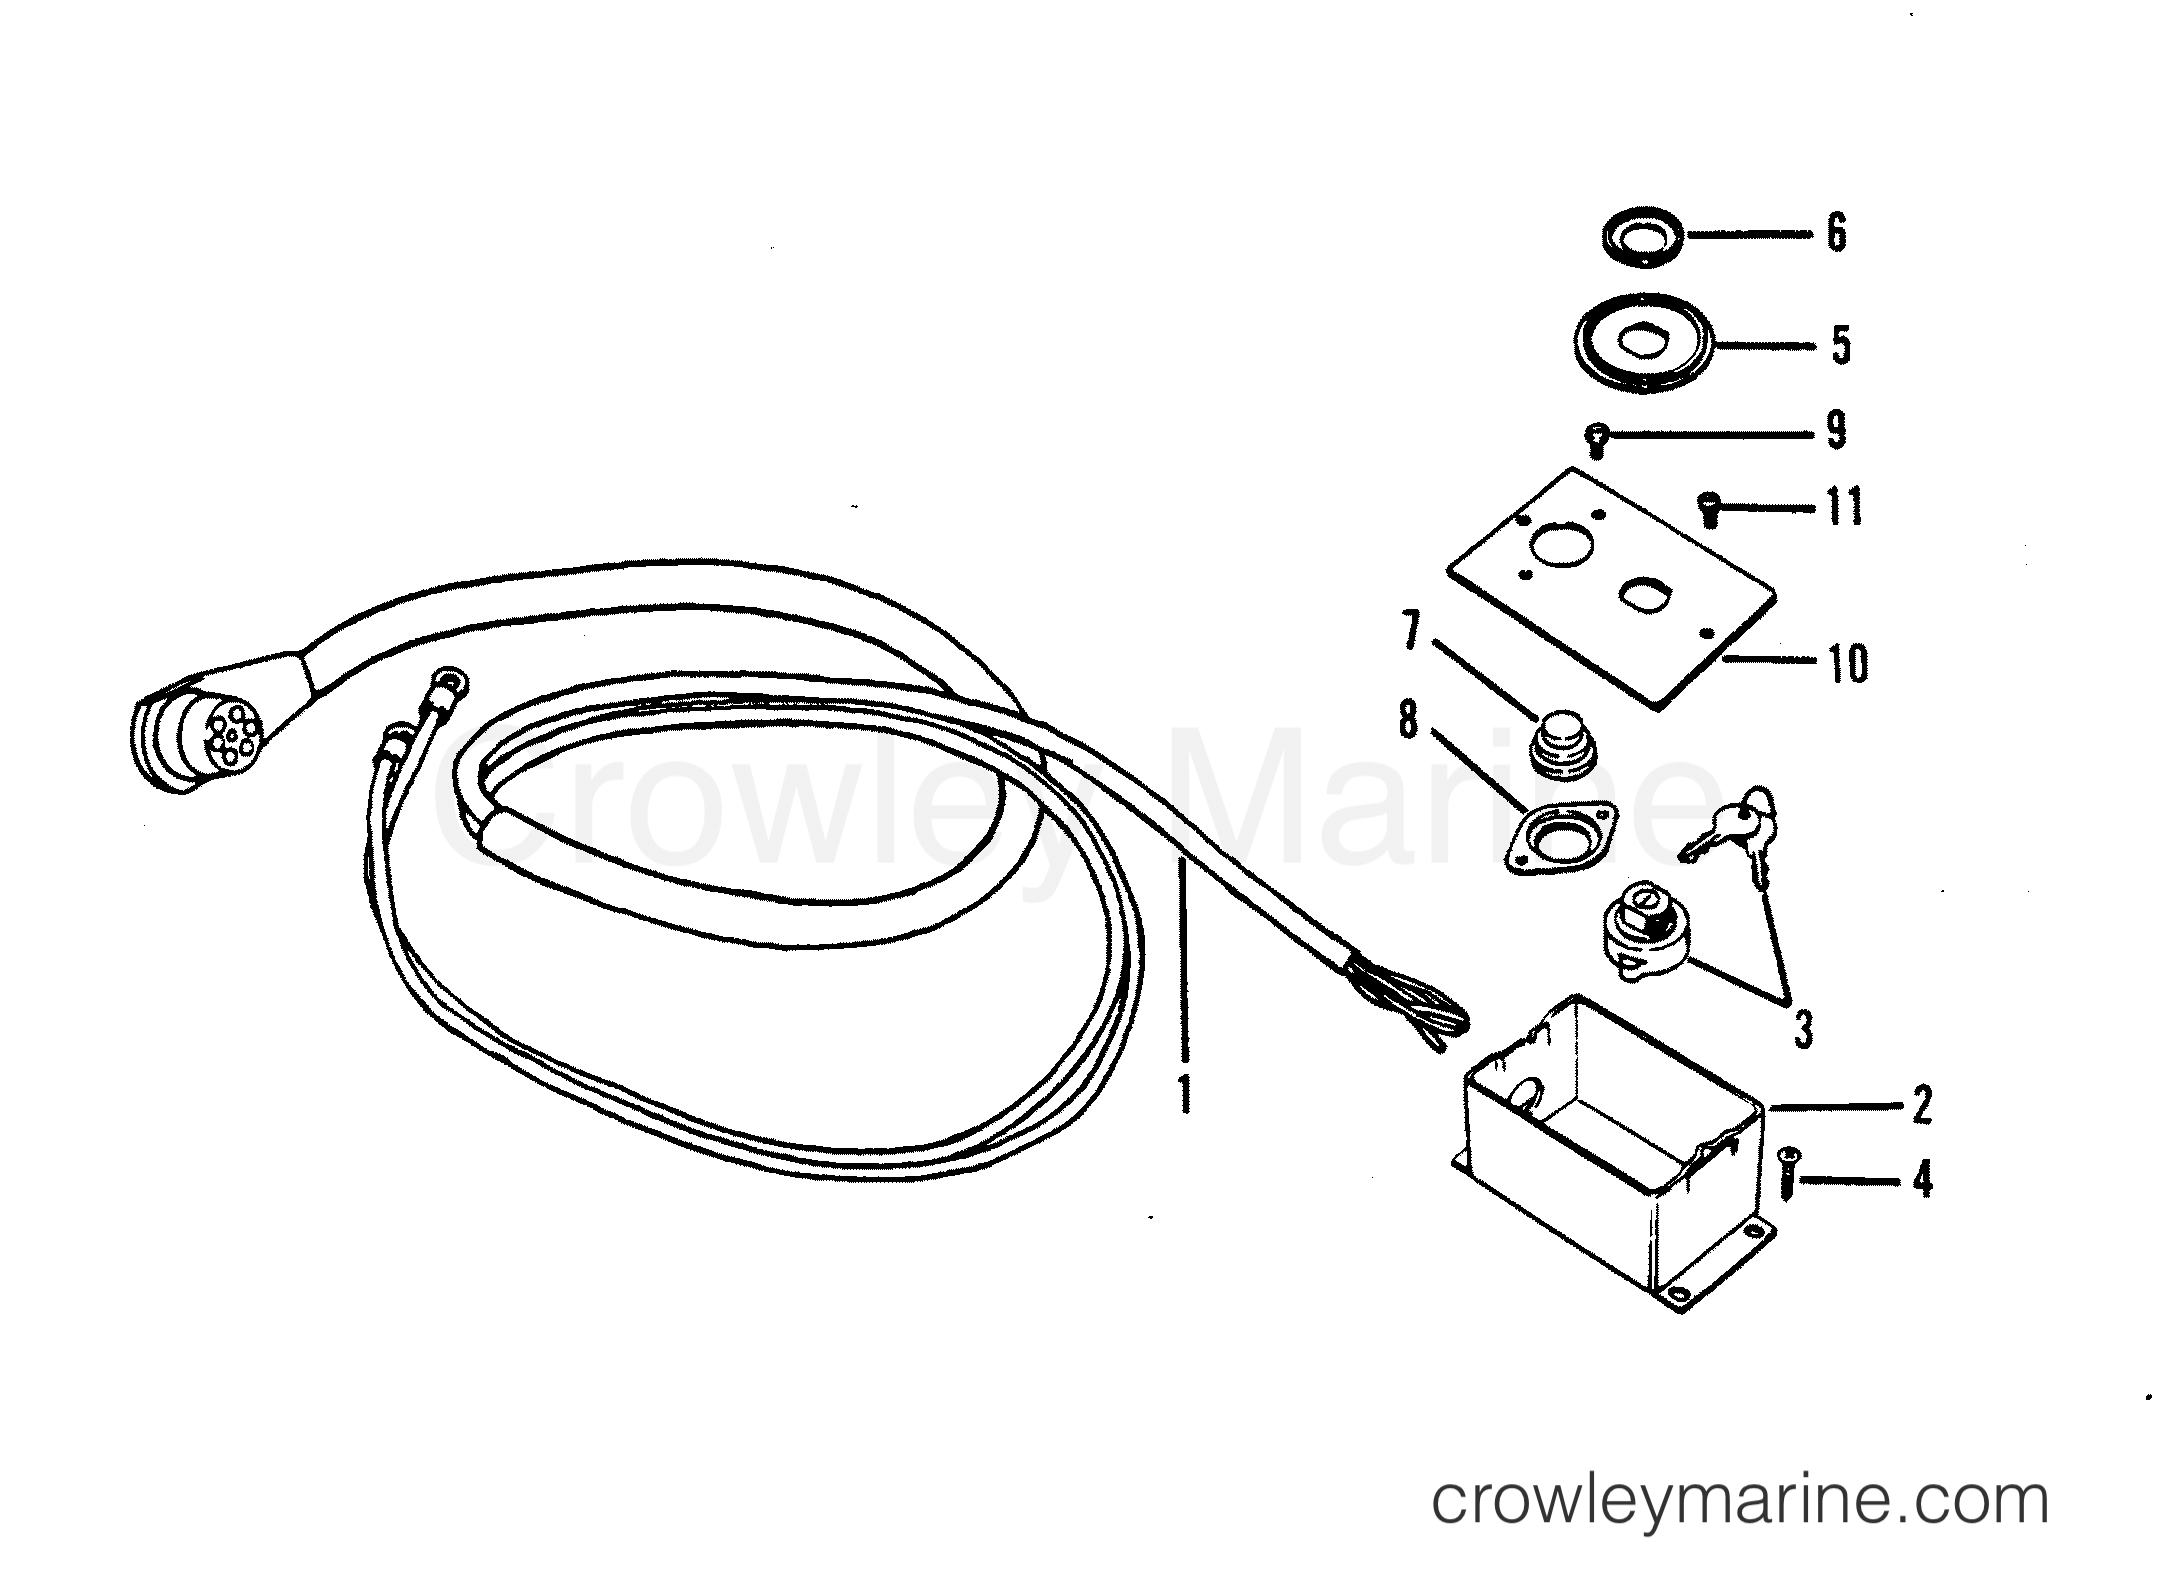 Ignition And Choke Assembly Electric